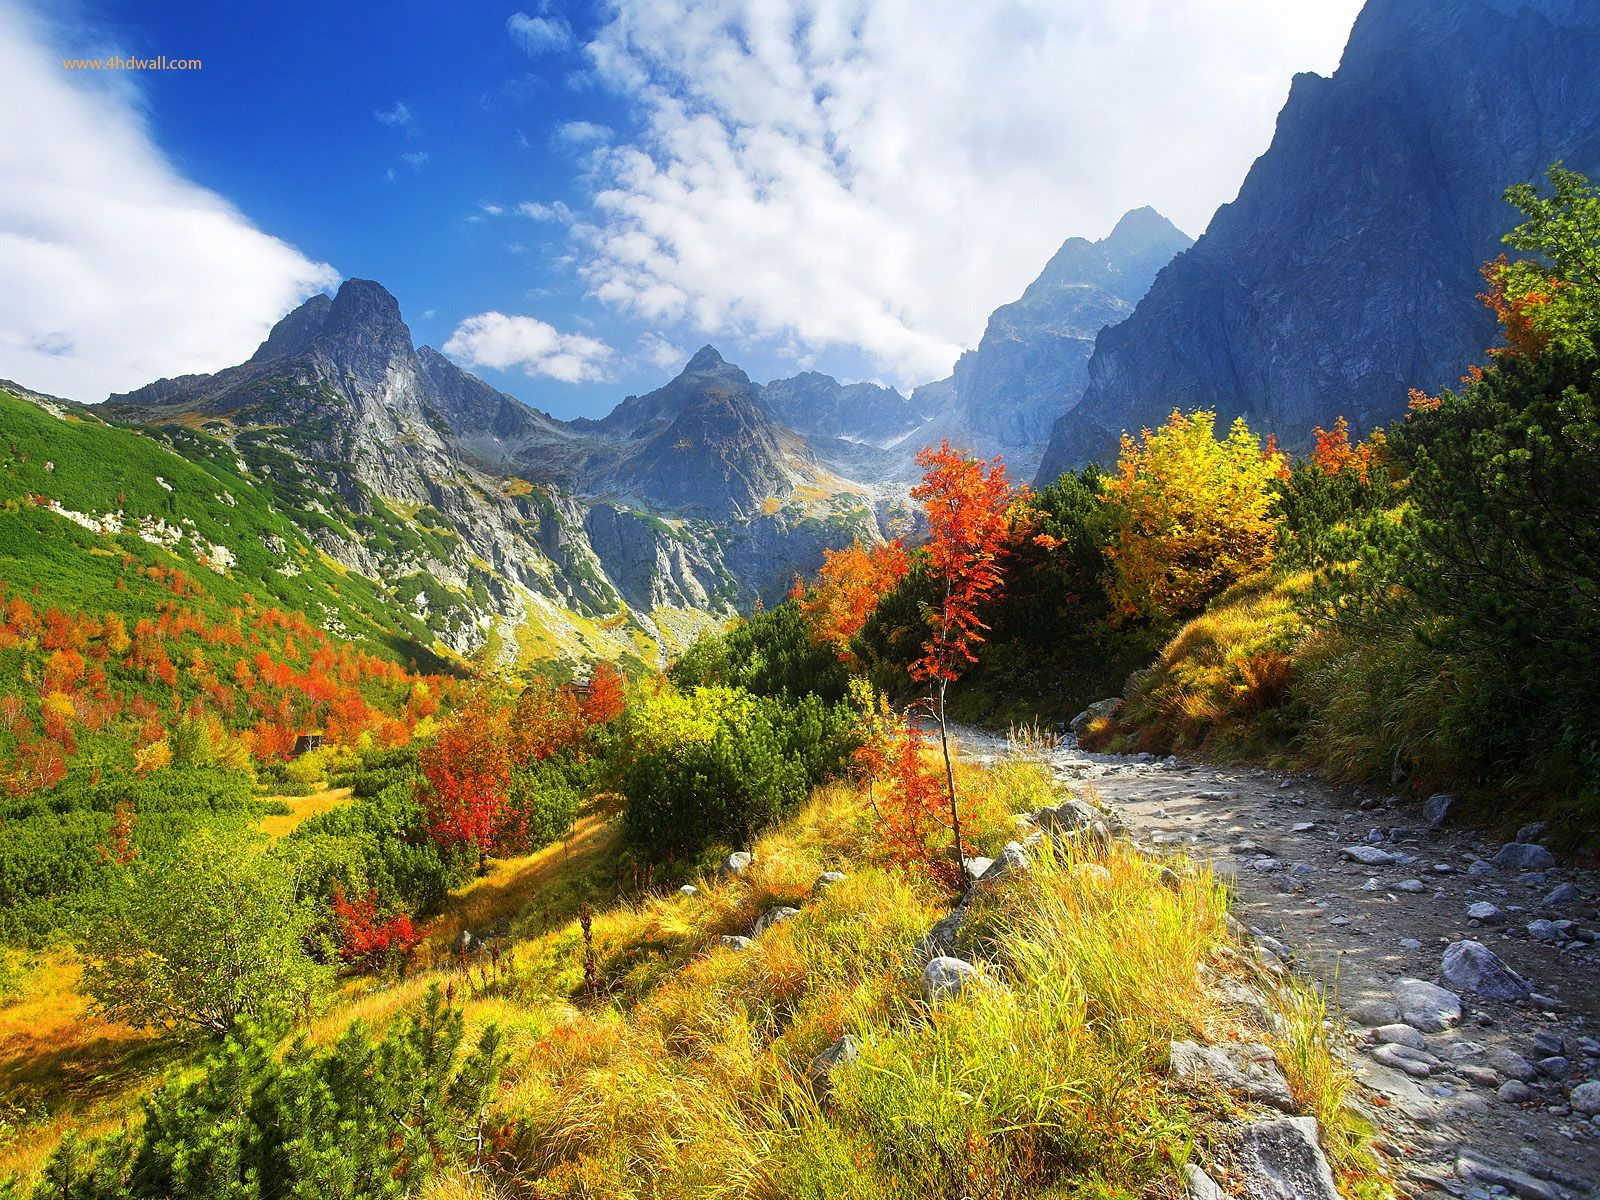 Very Beautiful Nature nature, definitions and wallpapers on pinterest